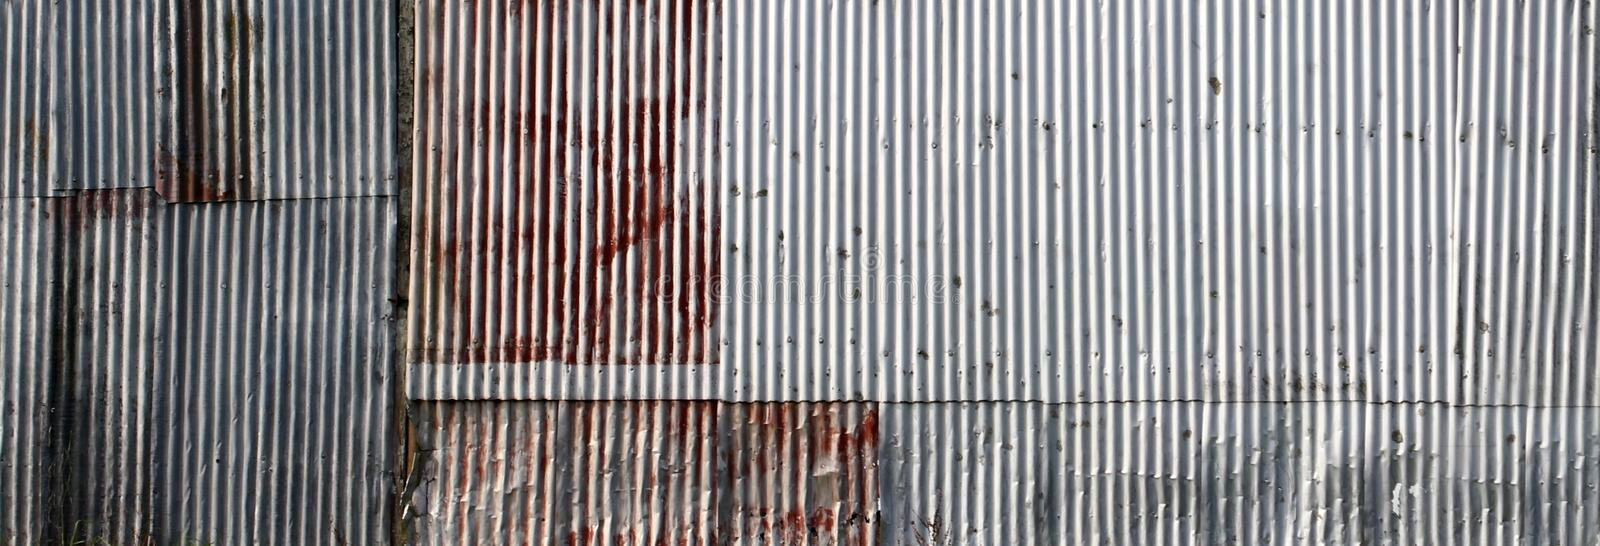 Corrugated iron stock image